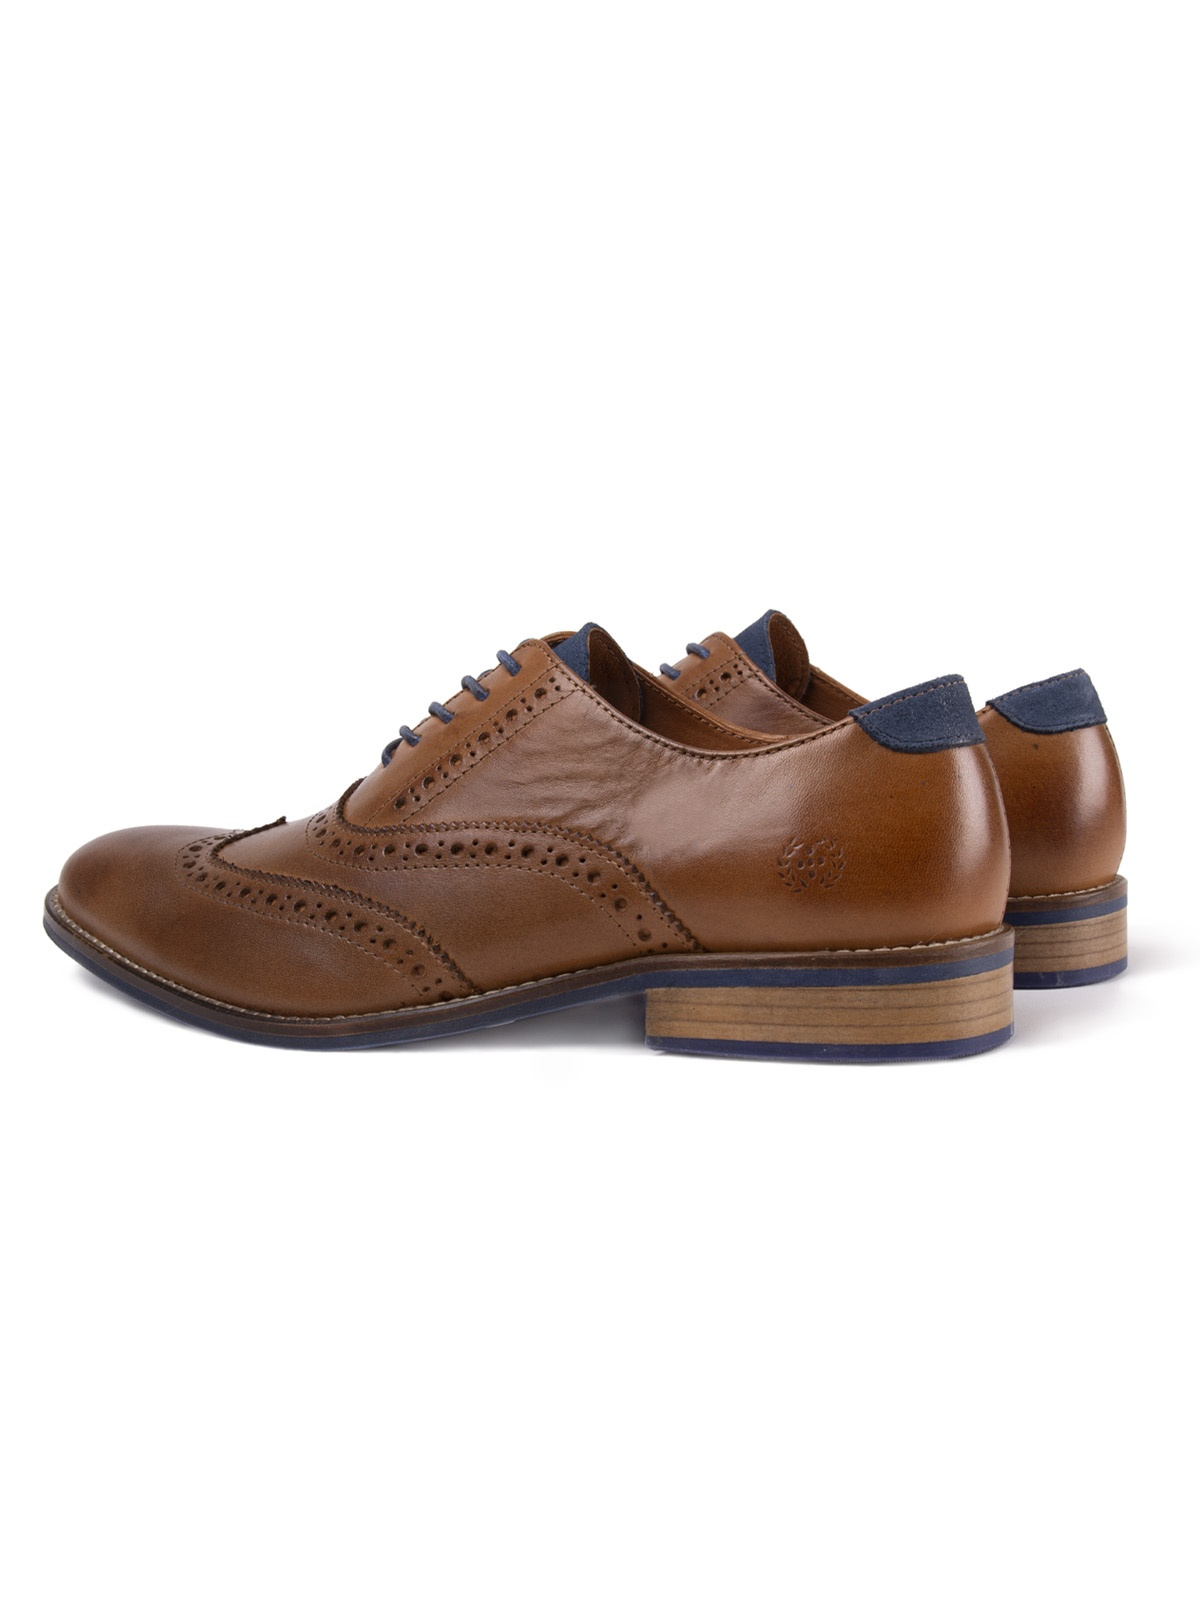 SAPATO SMK BROWN WAY